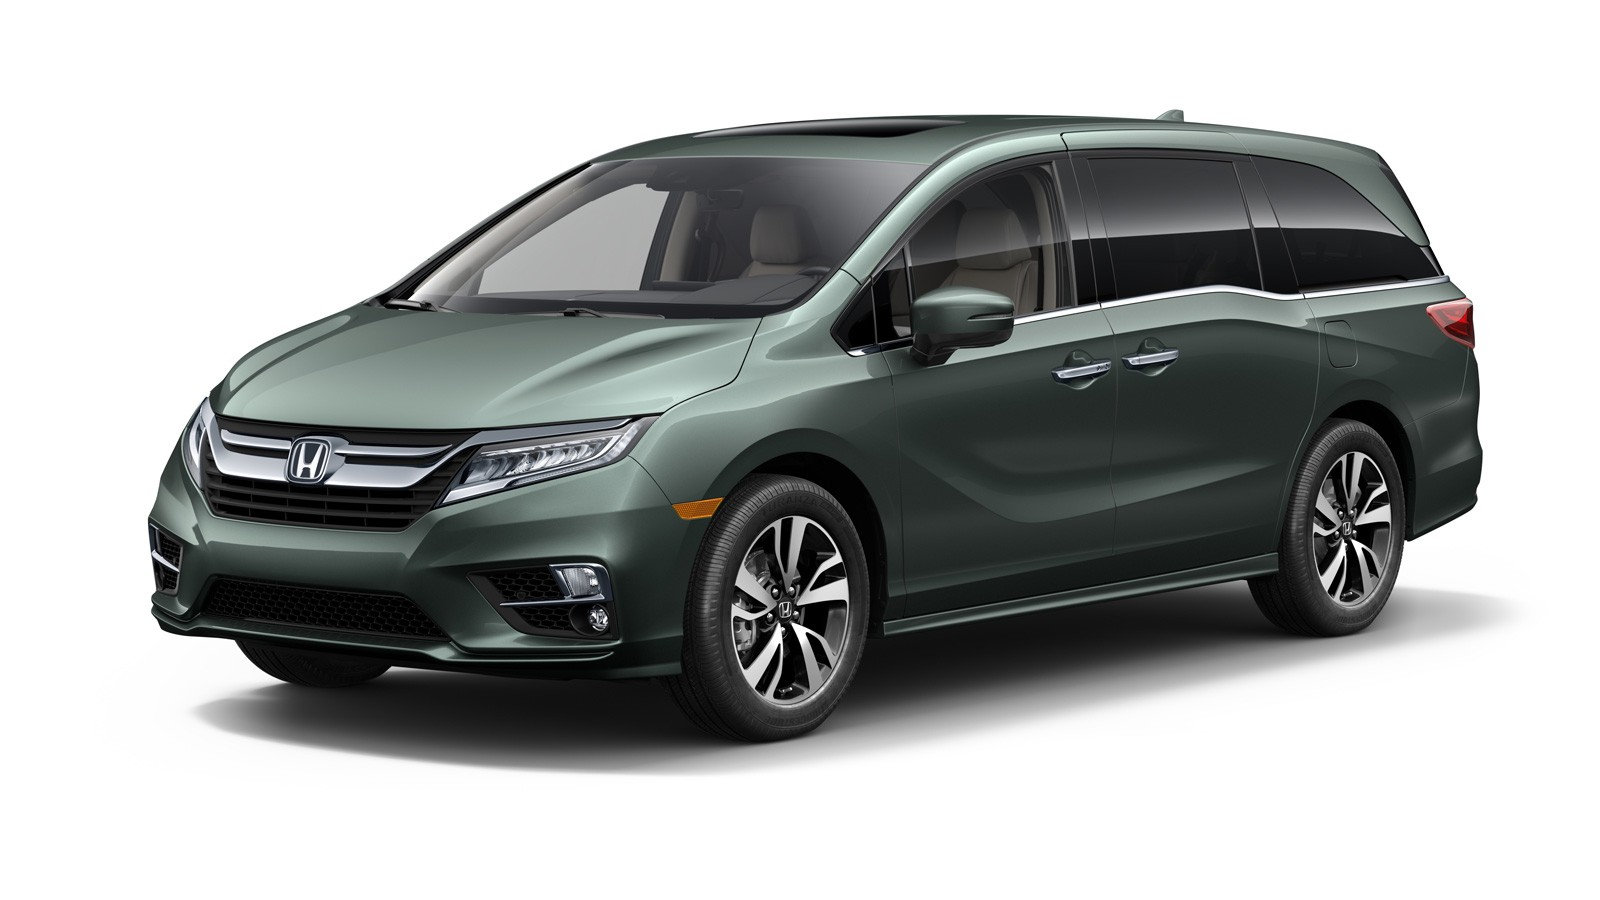 If you re patient there s a new 2018 honda odyssey just around the corner but if you re in the market now you may be able to get a good deal on the 2017